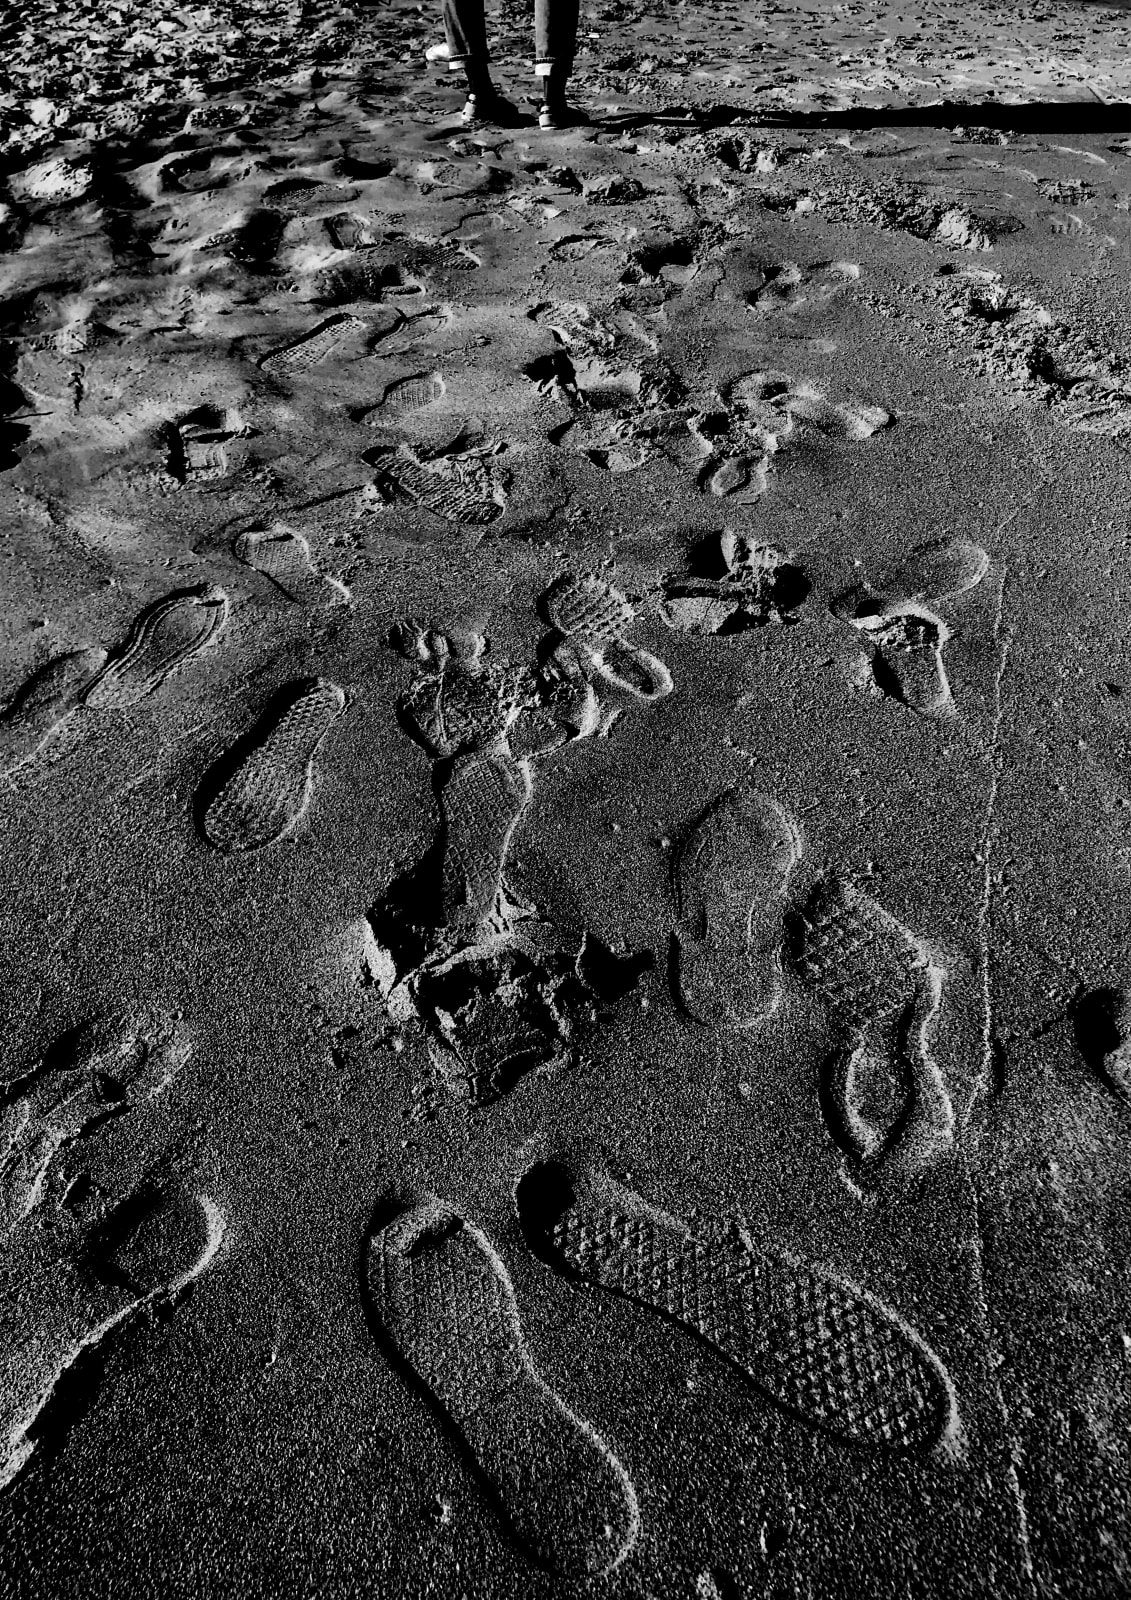 Yasmine Iddriss Footprints 42 x 59.4 cm 29.7 x 42 cm Digital print